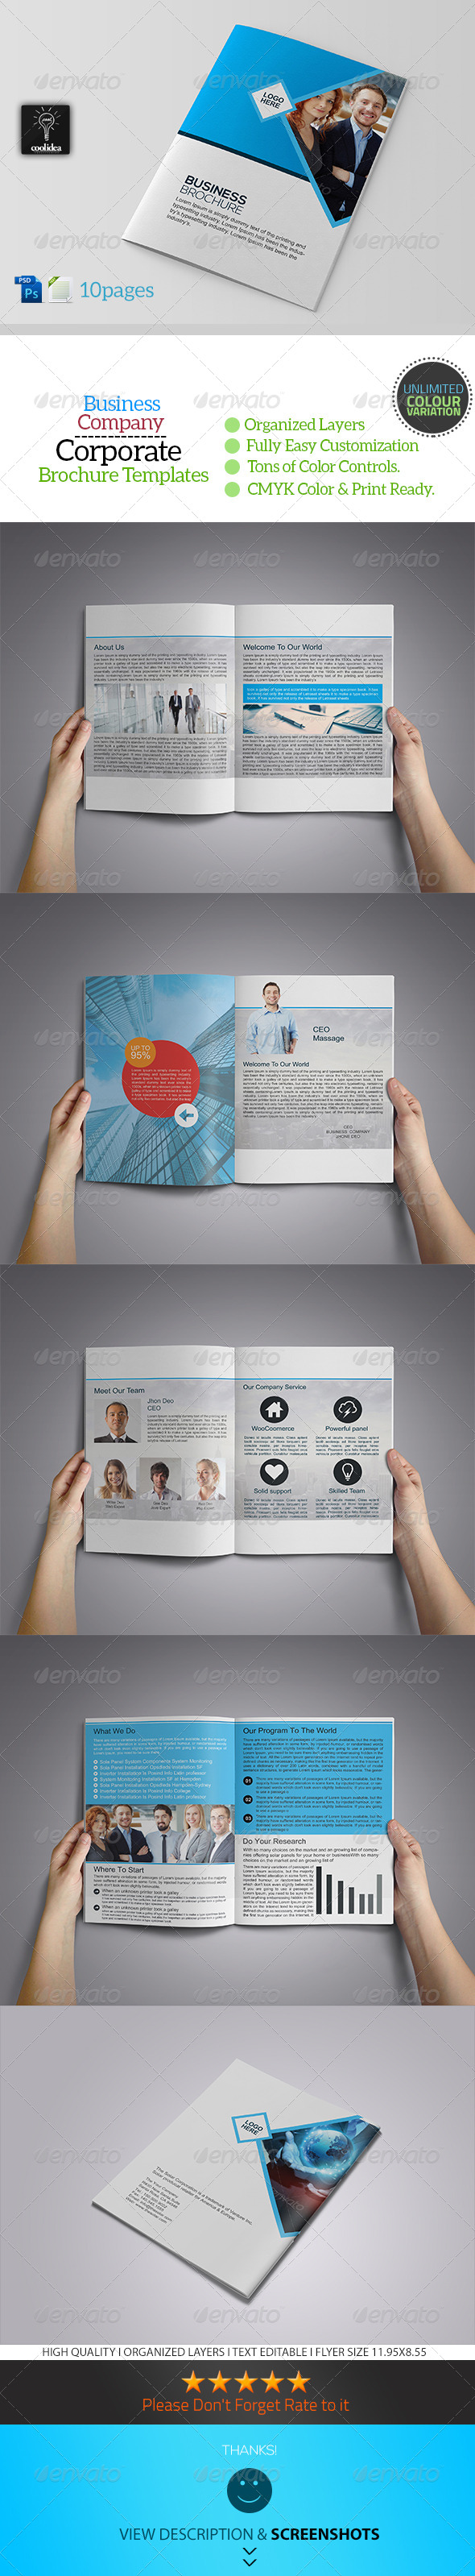 GraphicRiver Business Company 10 Pages Business Brochure 7937644